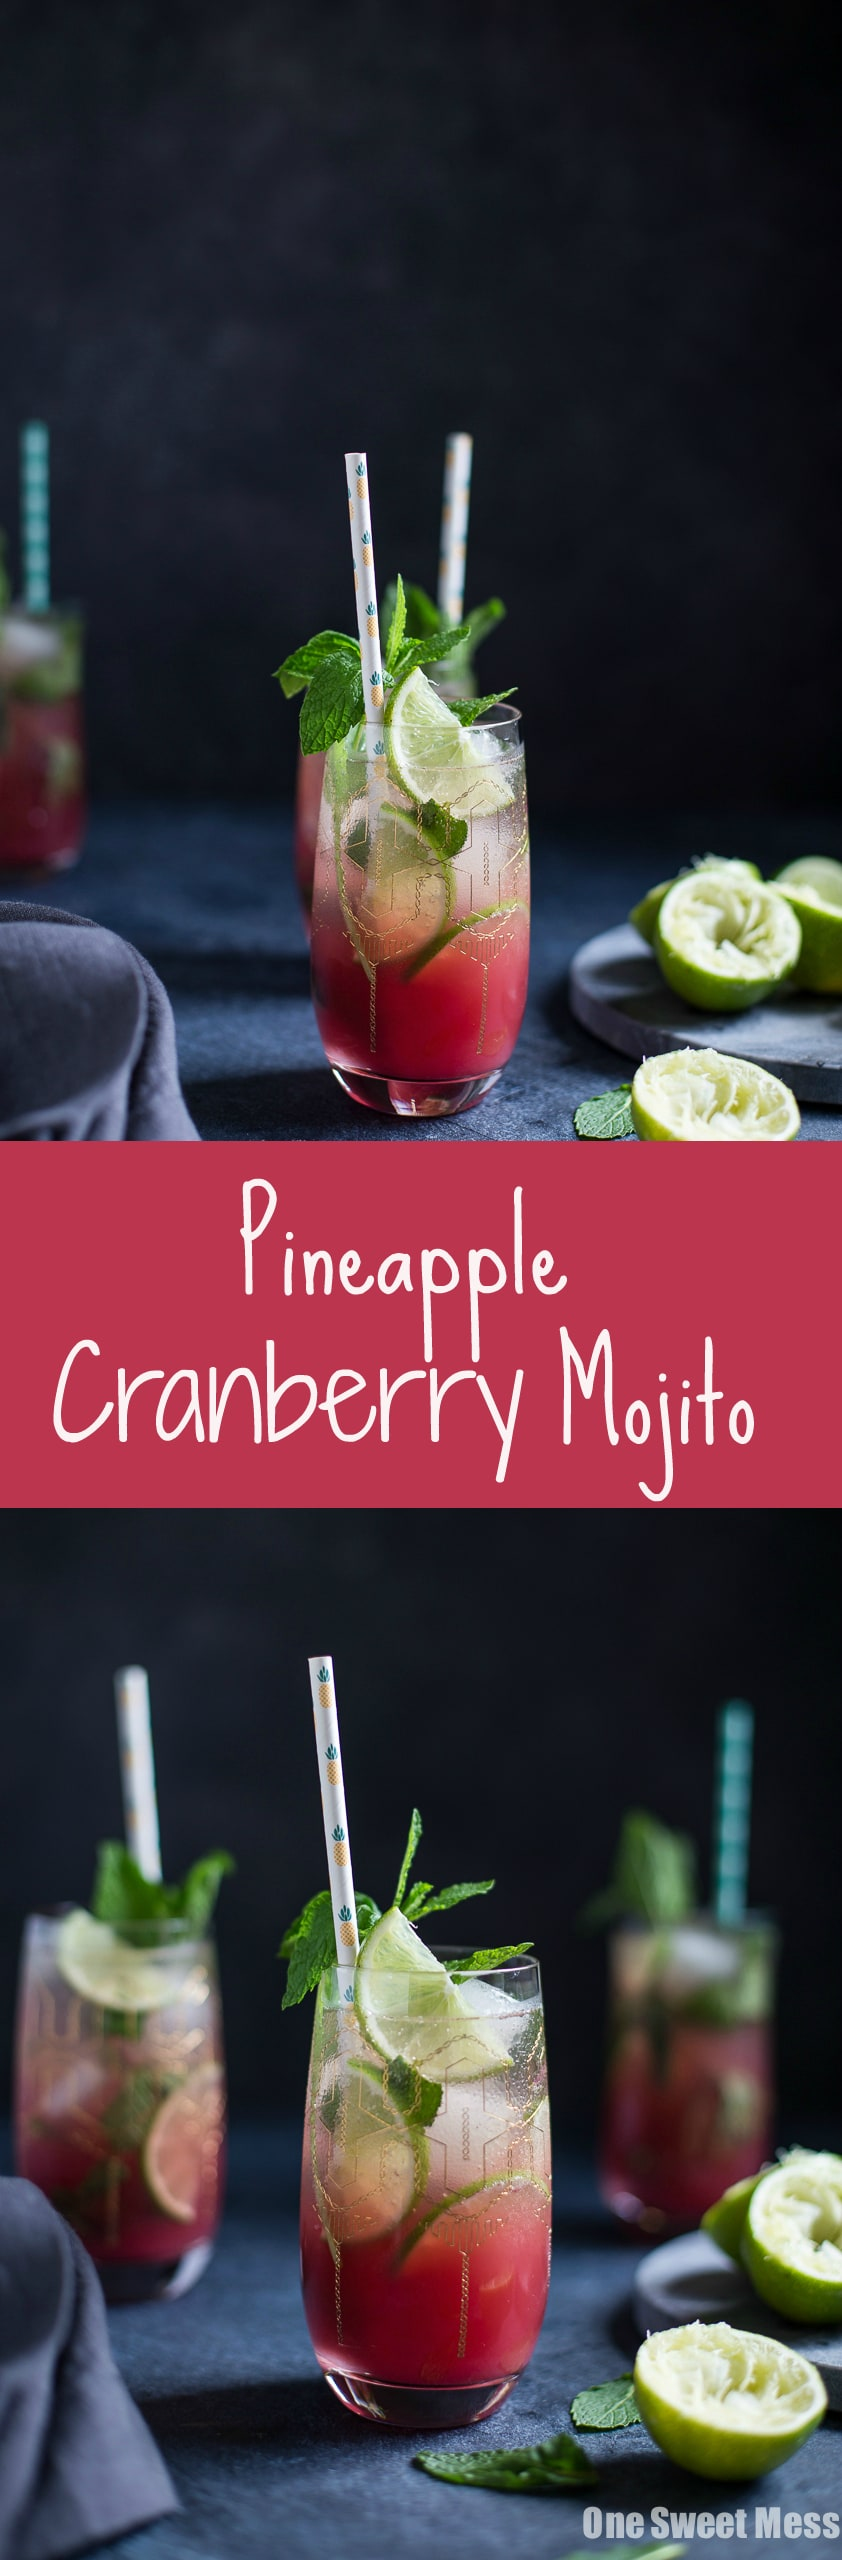 Pineapple Cranberry Mojito: This refreshing + fruity cocktail is perfect for summer sipping.